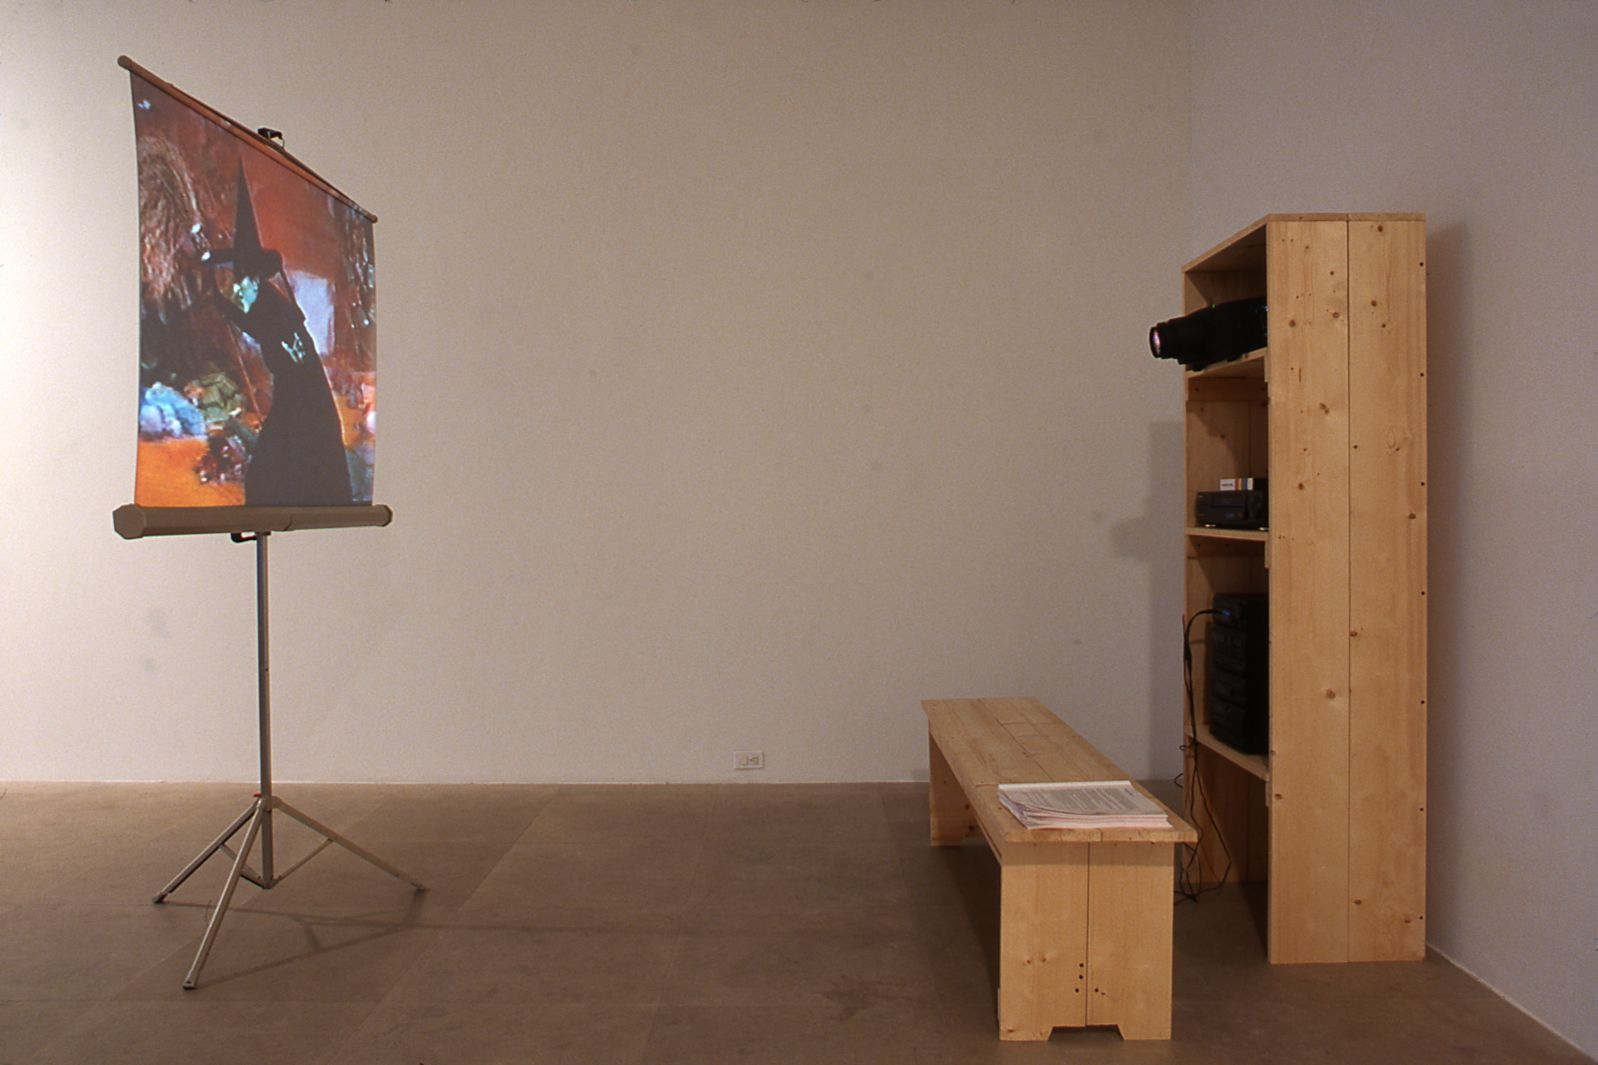 Julie Becker, Suburban Legend, 1999, 1 Beta Master tape, 1 vhs viewing copy, 1 metal homemovie screen, 1 vcr with time clock, 2 headphone sets, wood shelf unit and bench, 3 Suburban Legend manuals